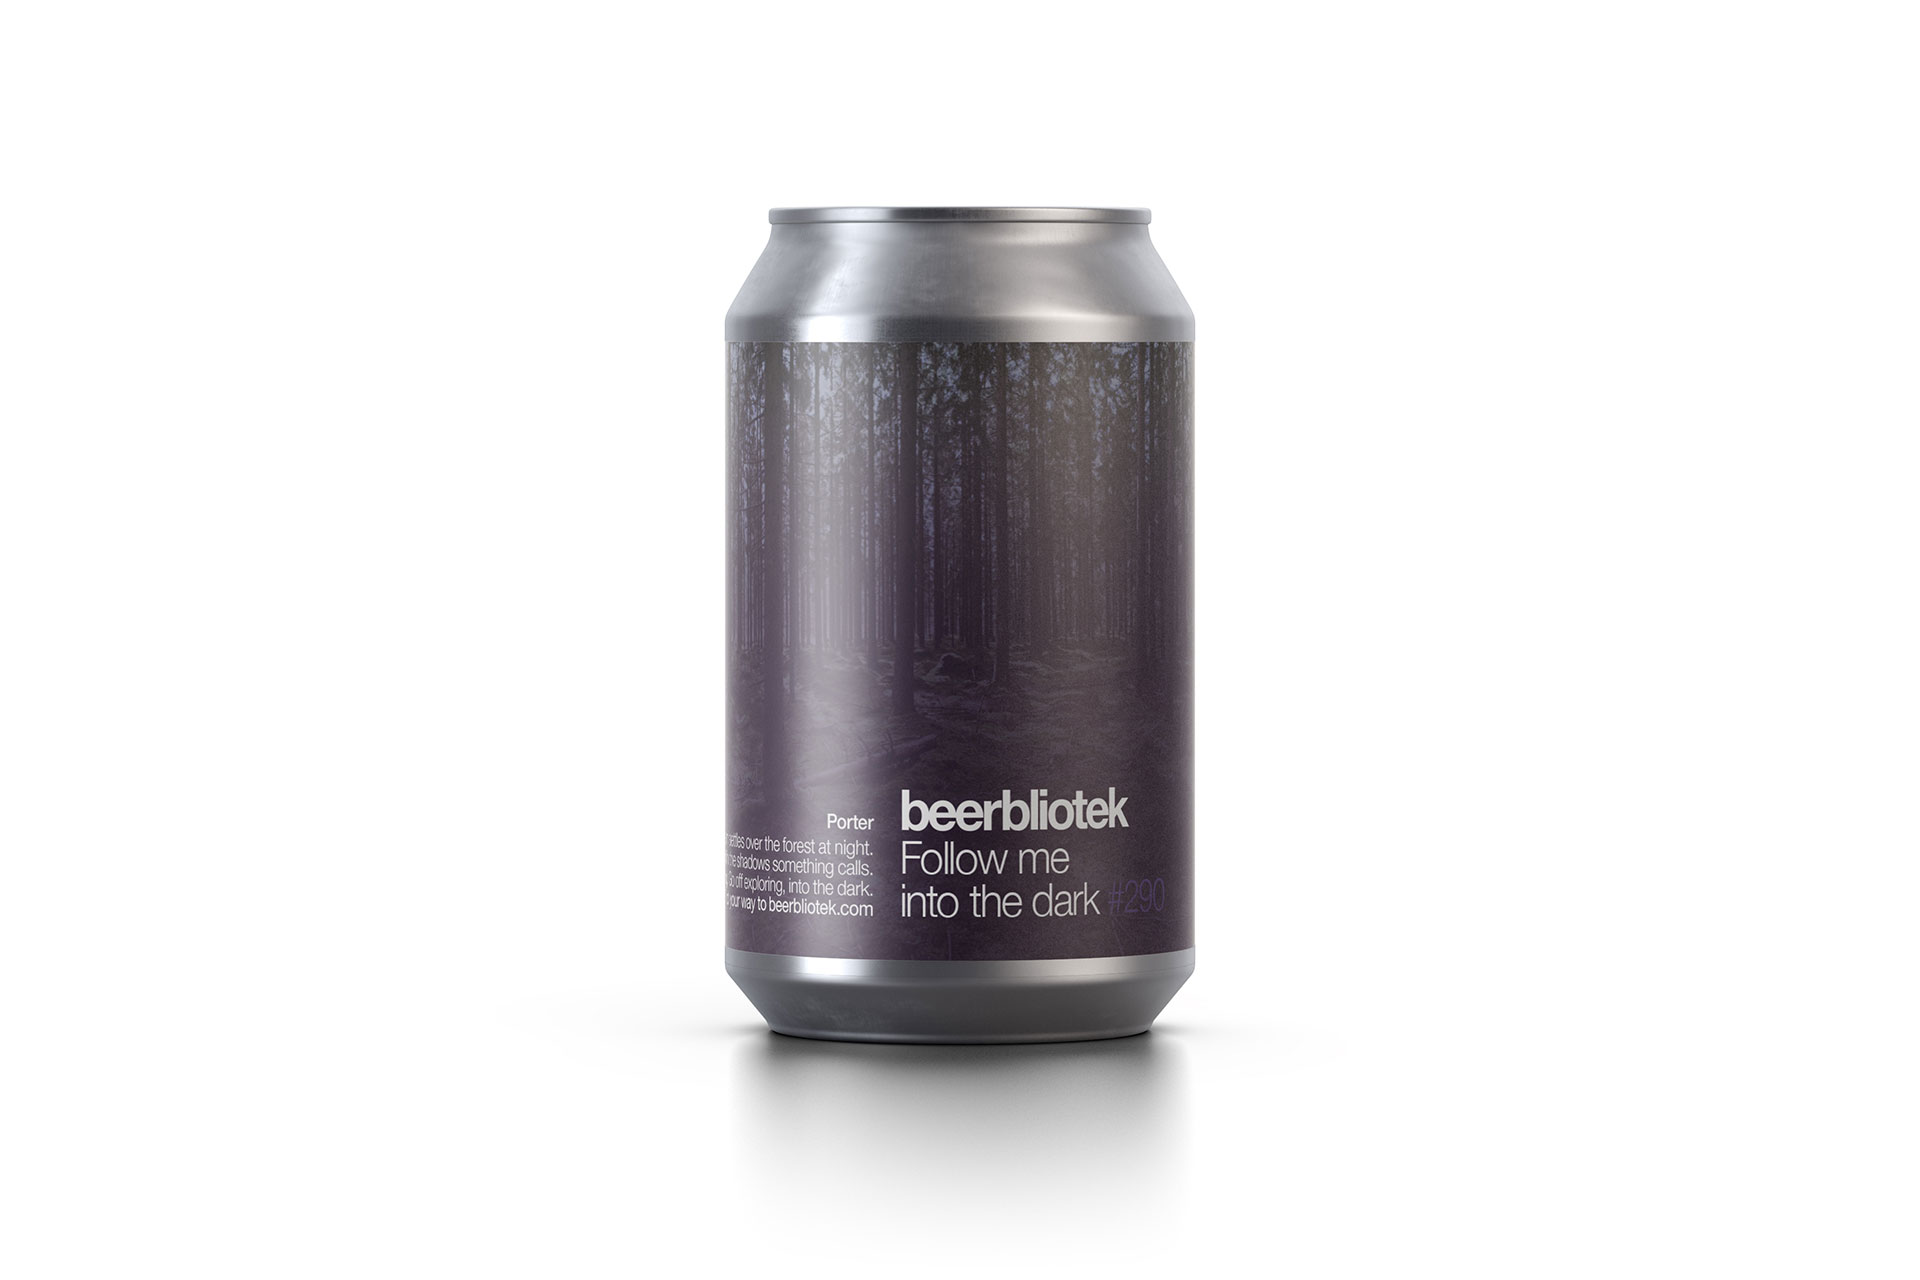 Beerbliotek-Follow-me-into-the-dark-Can-Packshot-Shadow-Landscape